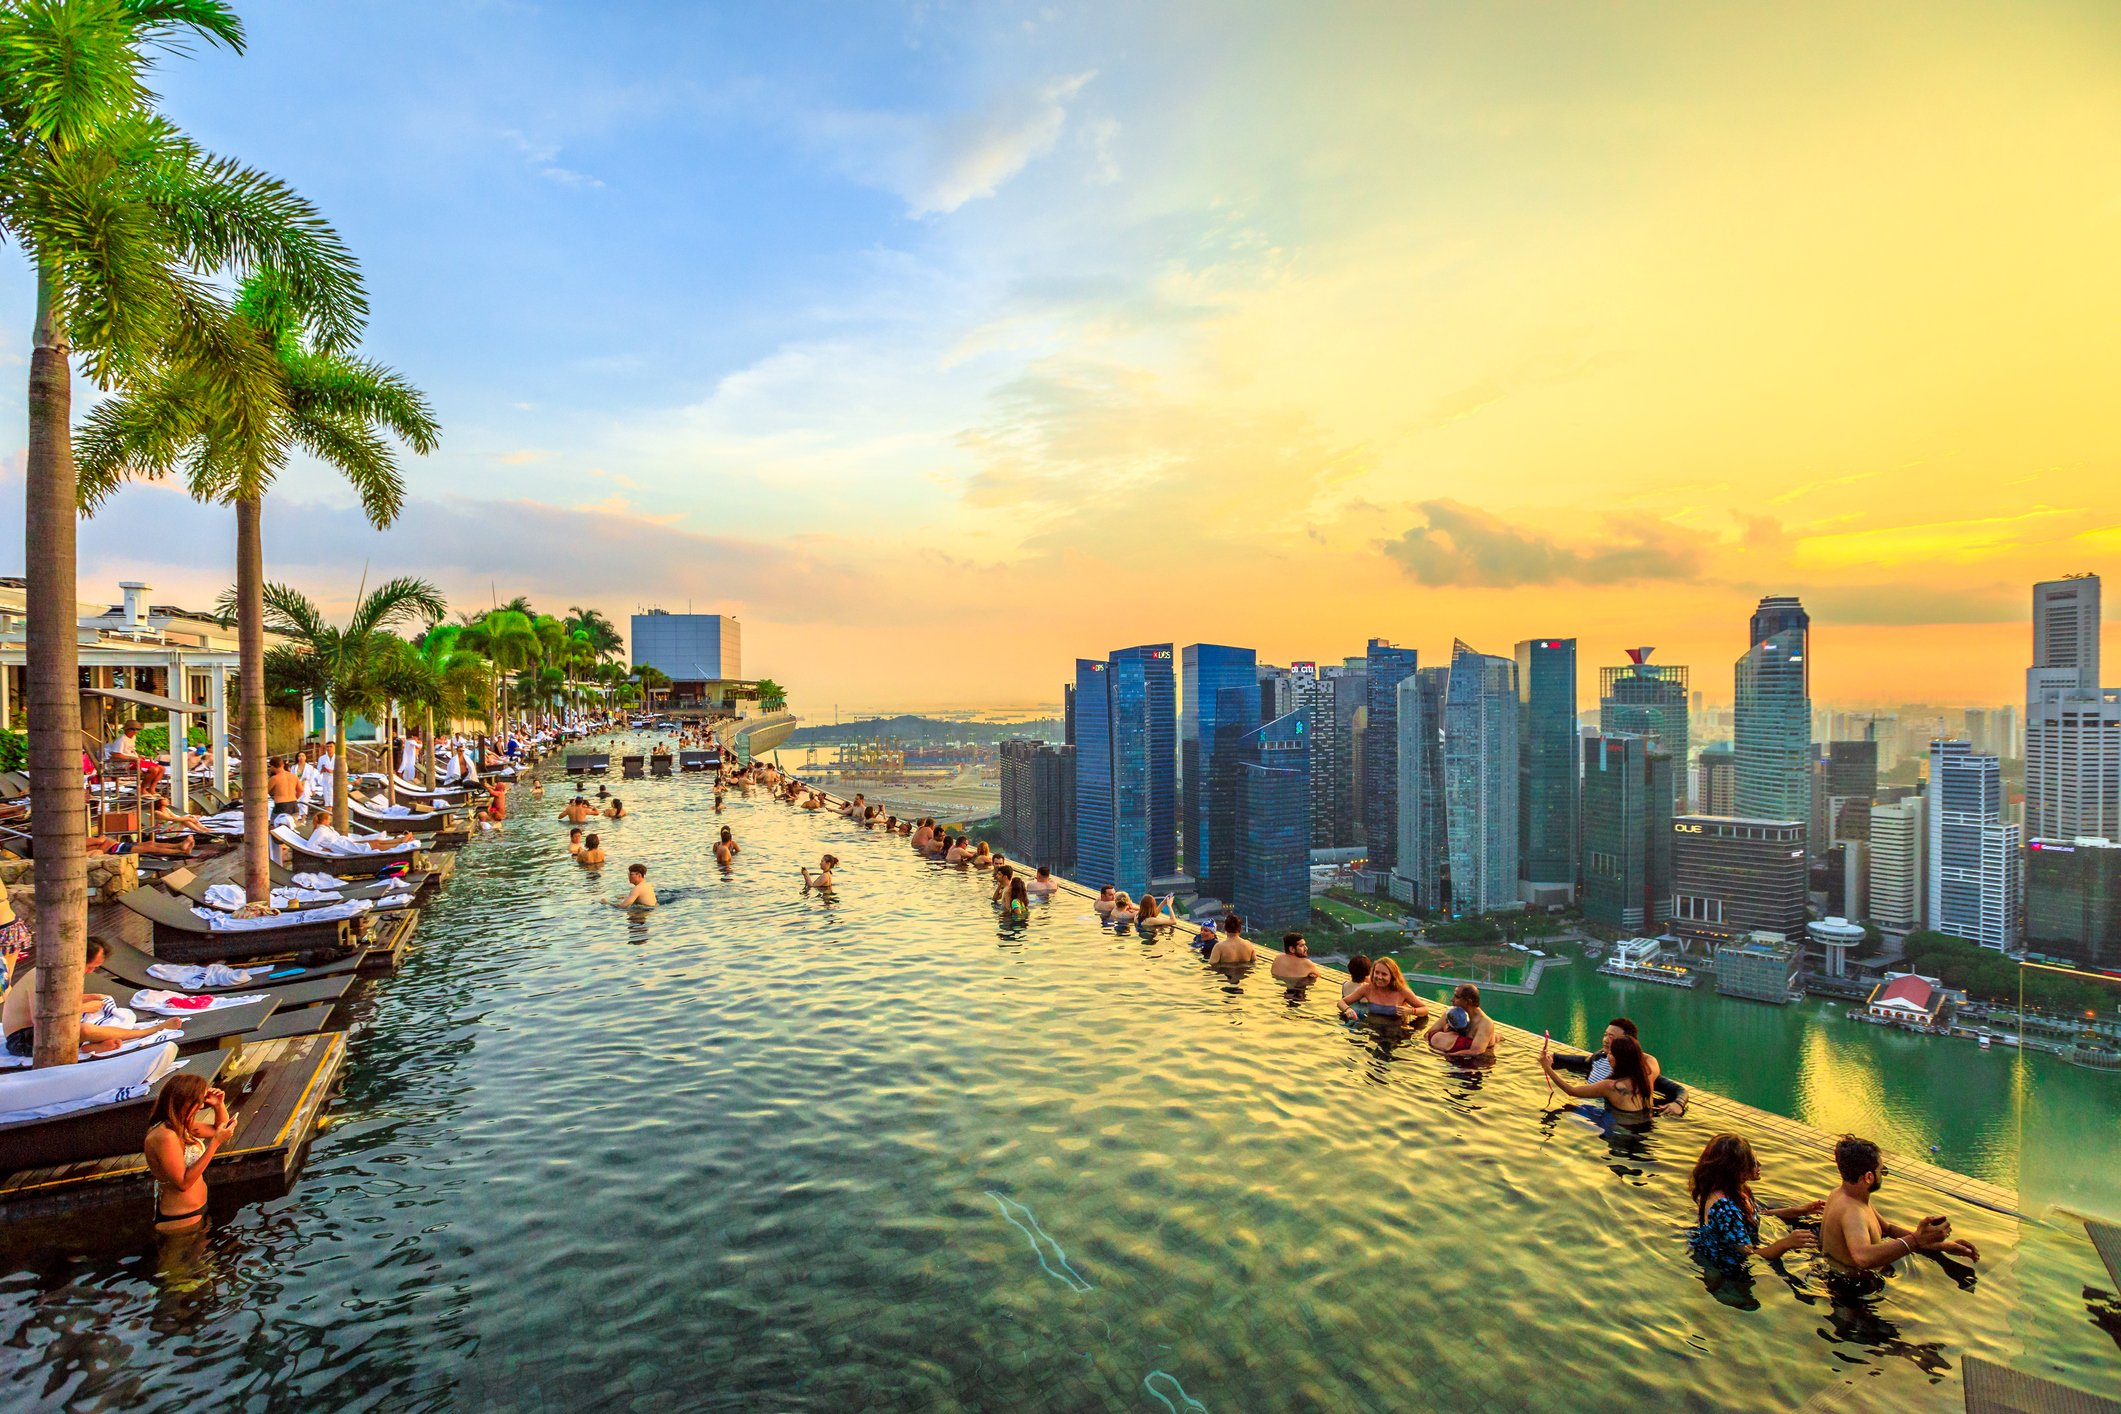 Top 8  Crazy Rich Asian  filming locations to visit in Singapore The infinity pool on the 57th floor of Singapore s Marina Bay Sands Hotel  offers jaw dropping views of the city   Getty Images